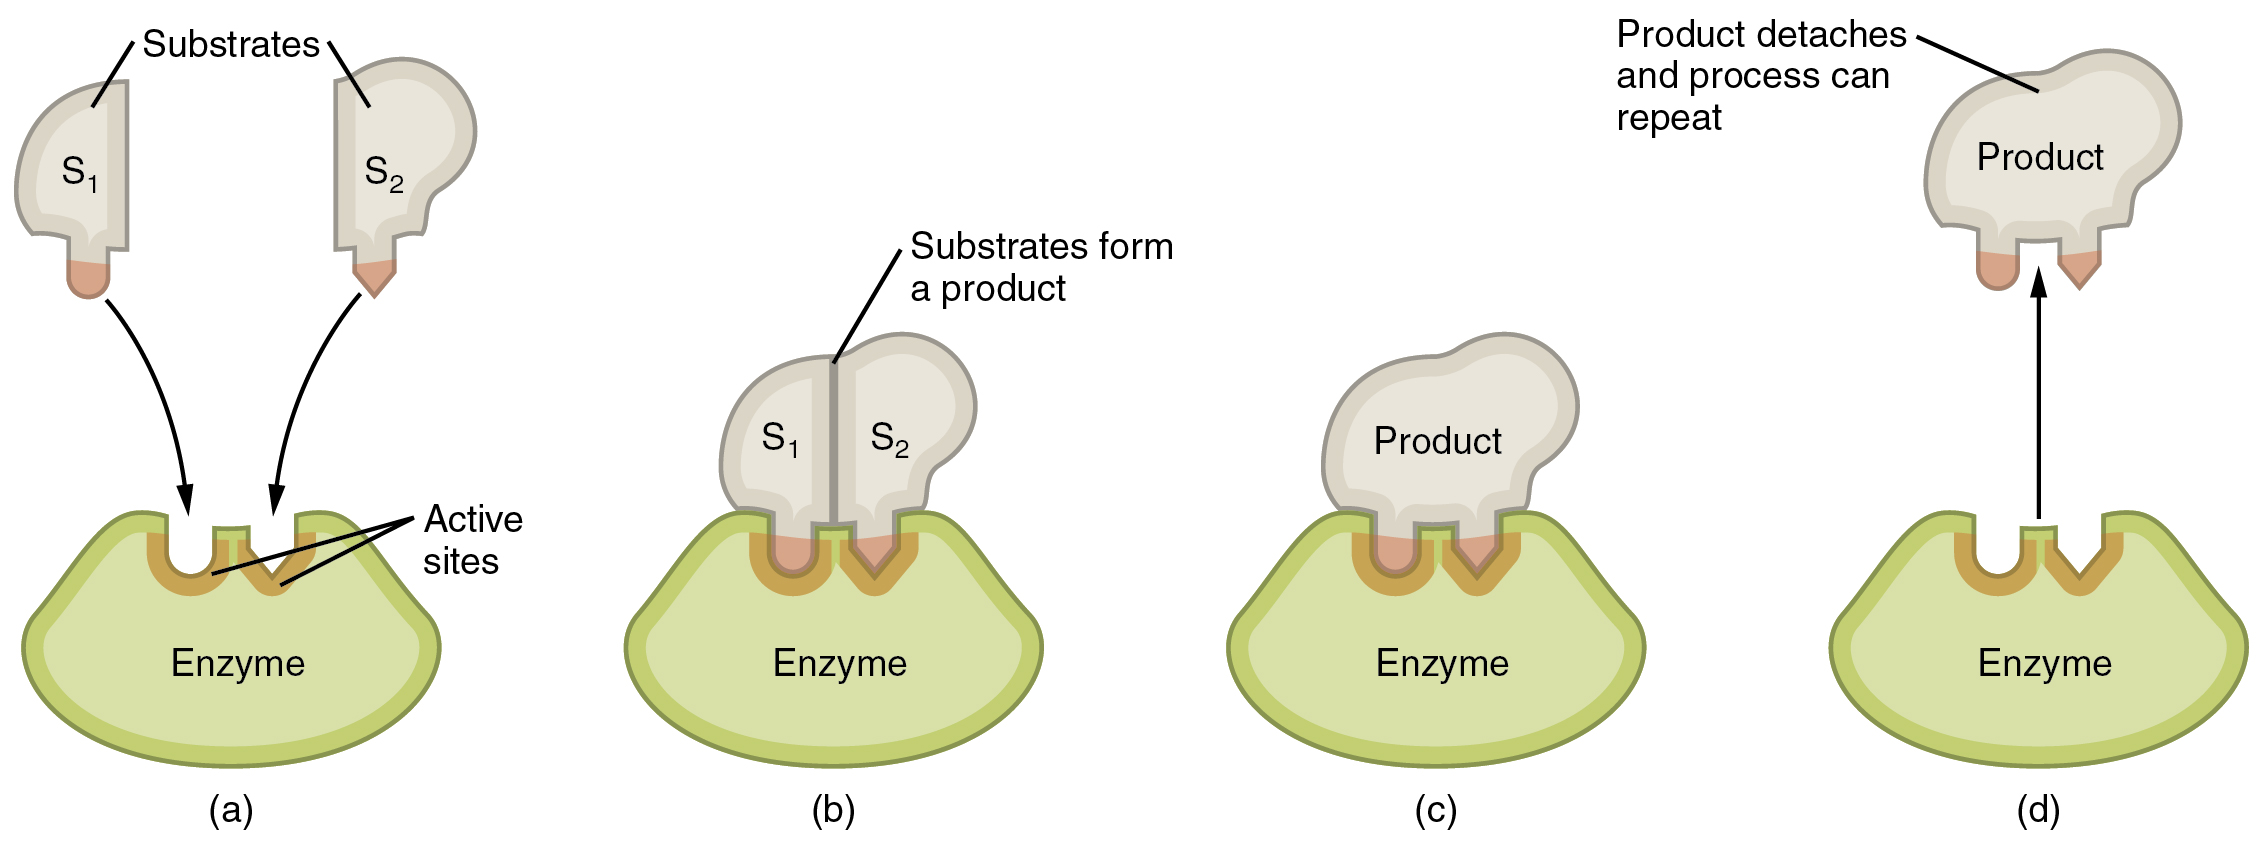 This image shows the steps in which an enzyme can act. The substrate is shown binding to the enzyme, forming a product, and the detachment of the product.